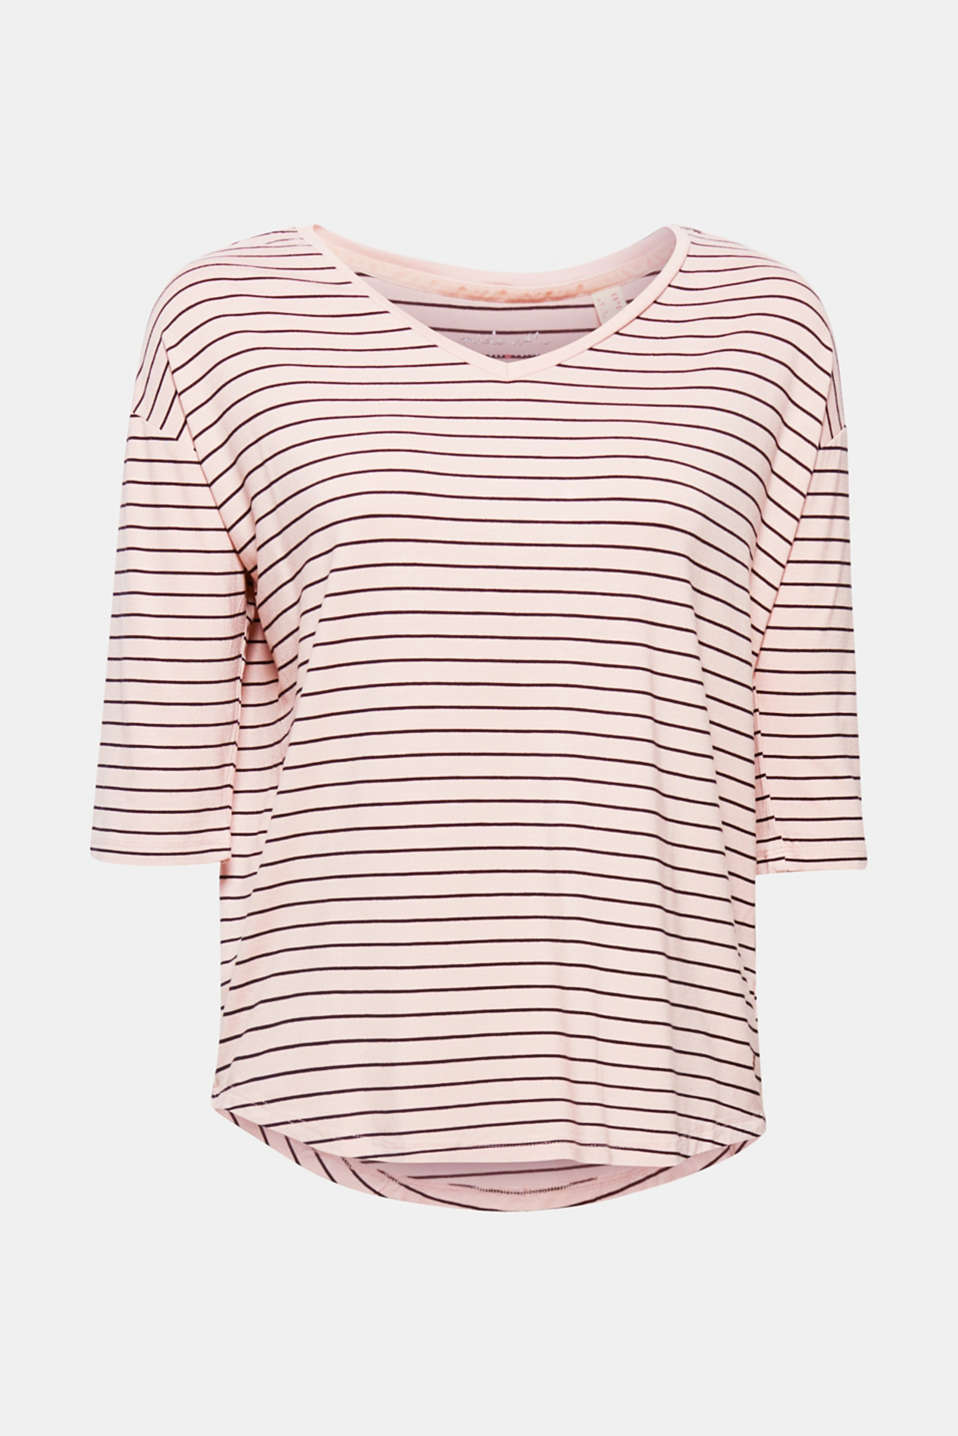 This stretch T-shirt with sporty stripes is smooth on the skin, very versatile and super trendy thanks to its mock oversized cut, V-neckline and three-quarter length sleeves!